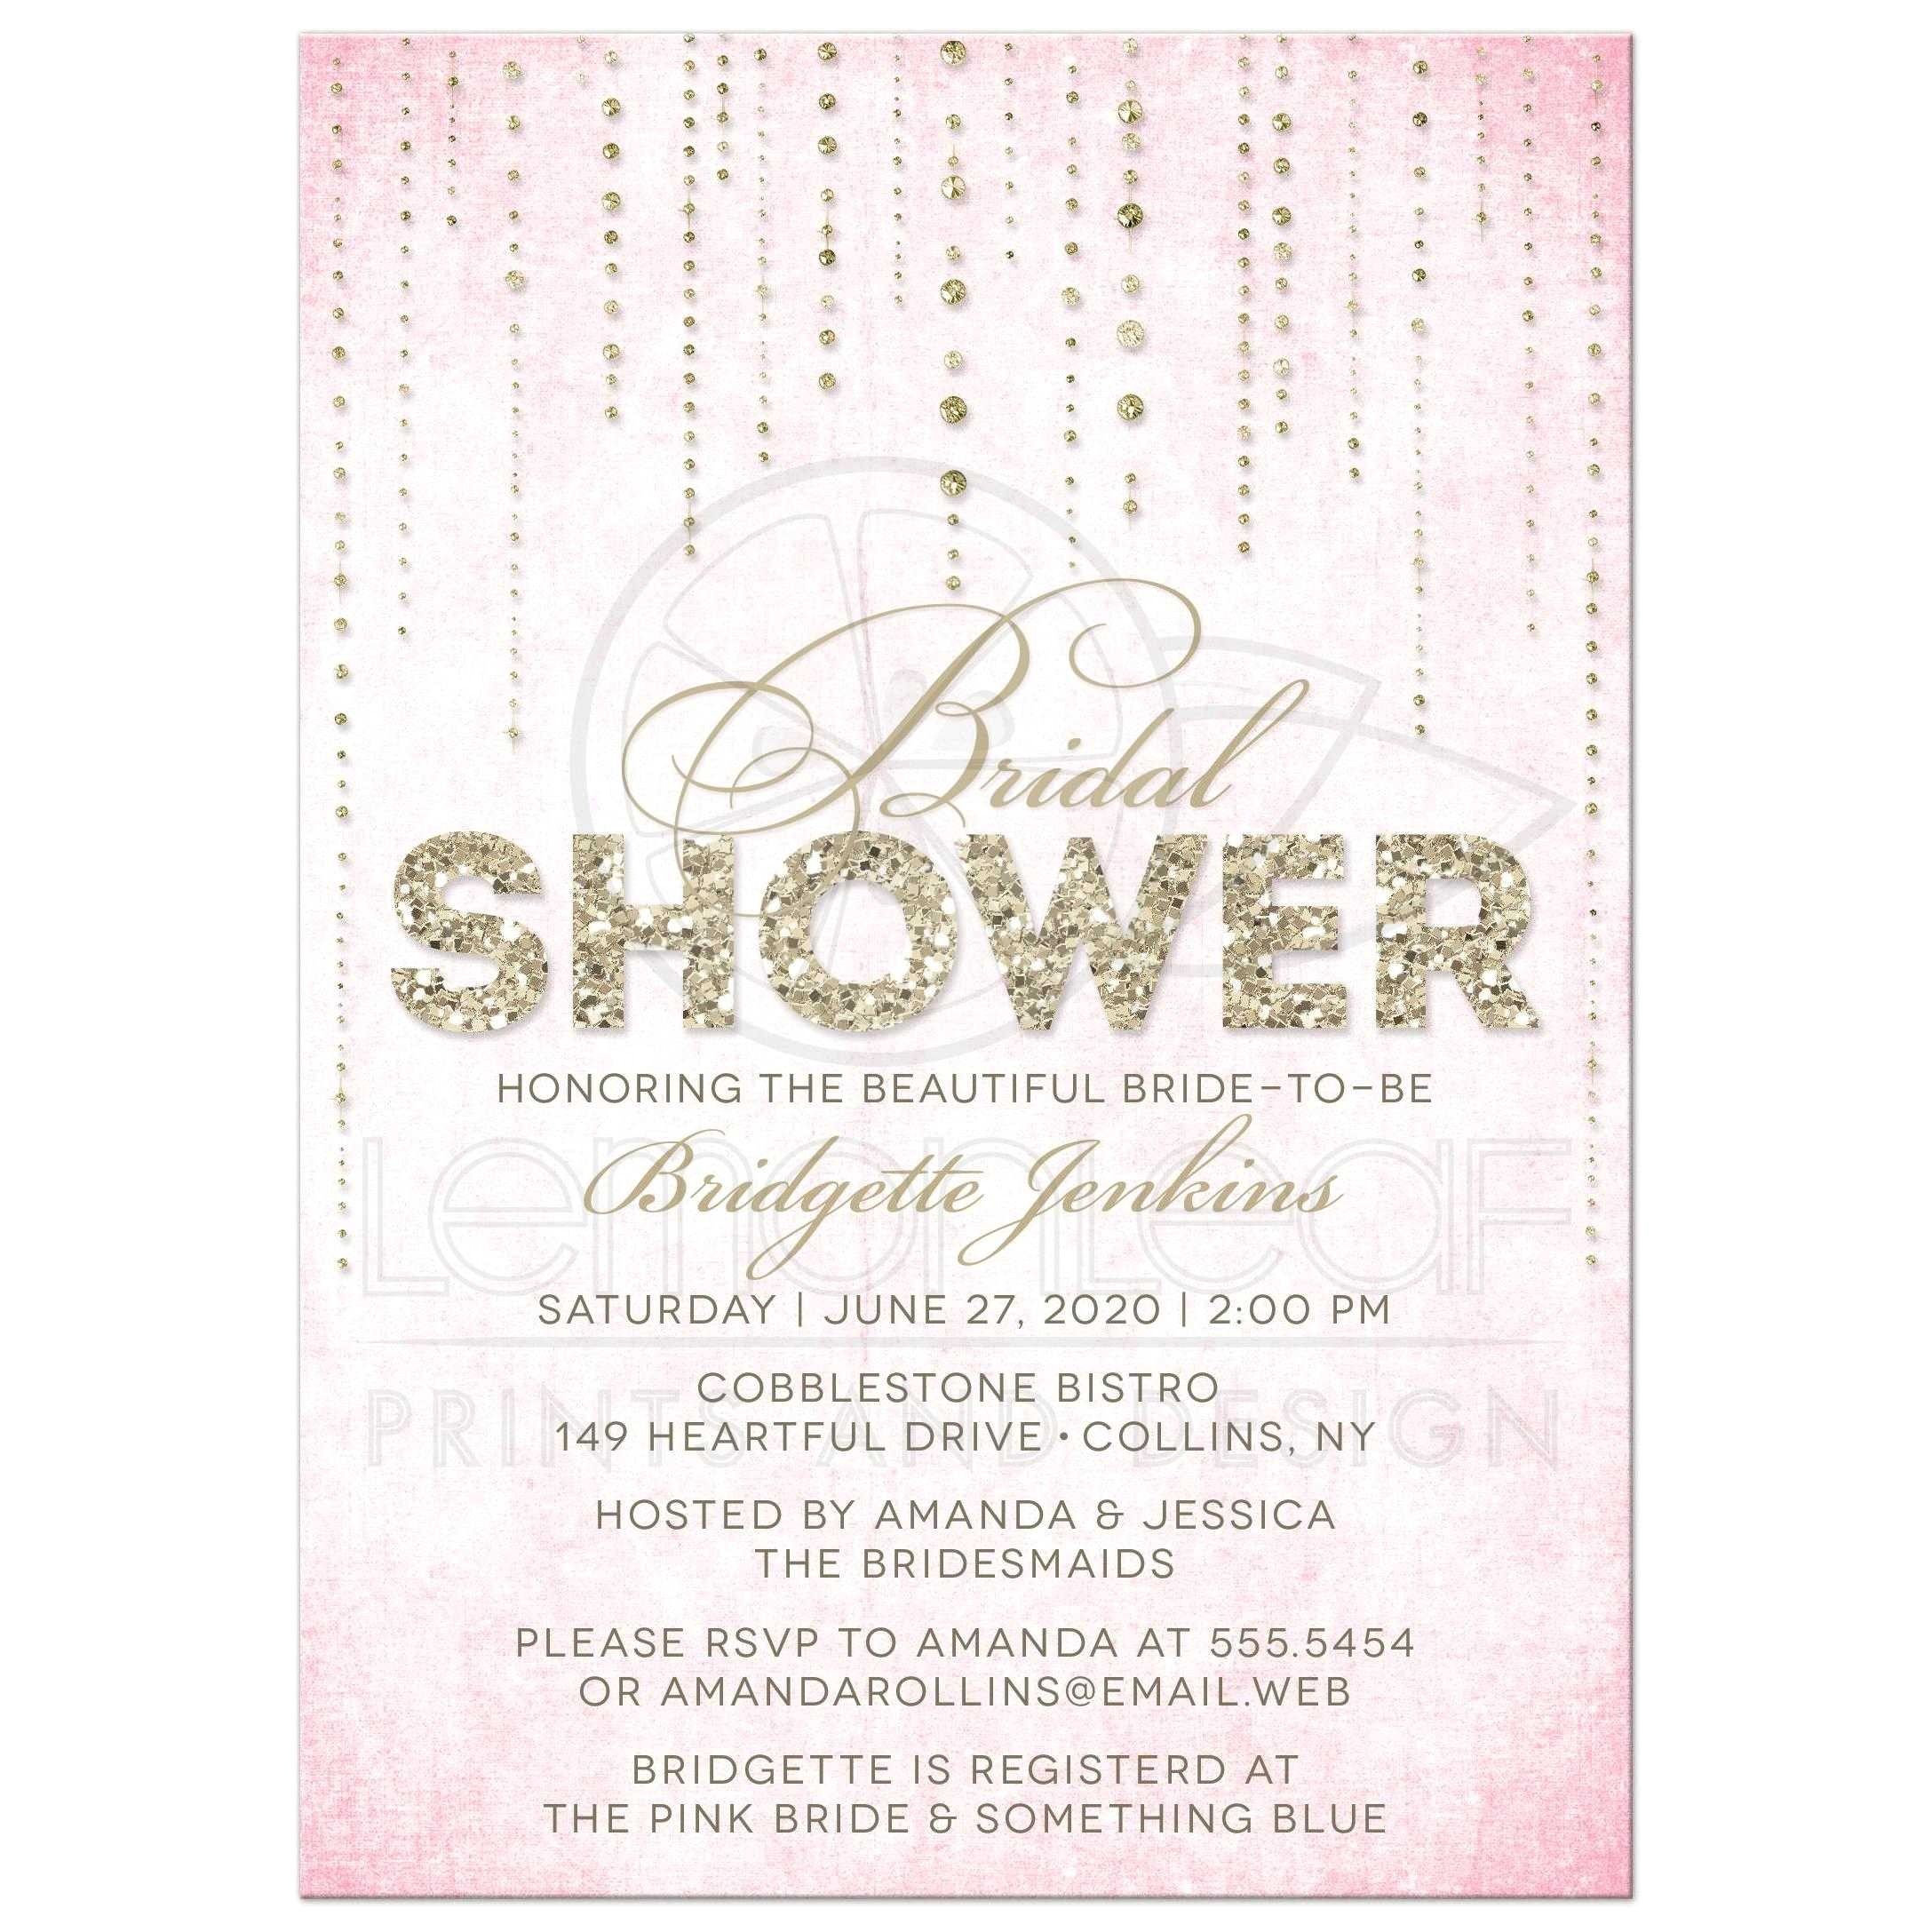 Baby Shower Invitation Wording for Office Party Fice Baby Shower Invitation Wording Oxyline E Fbe37